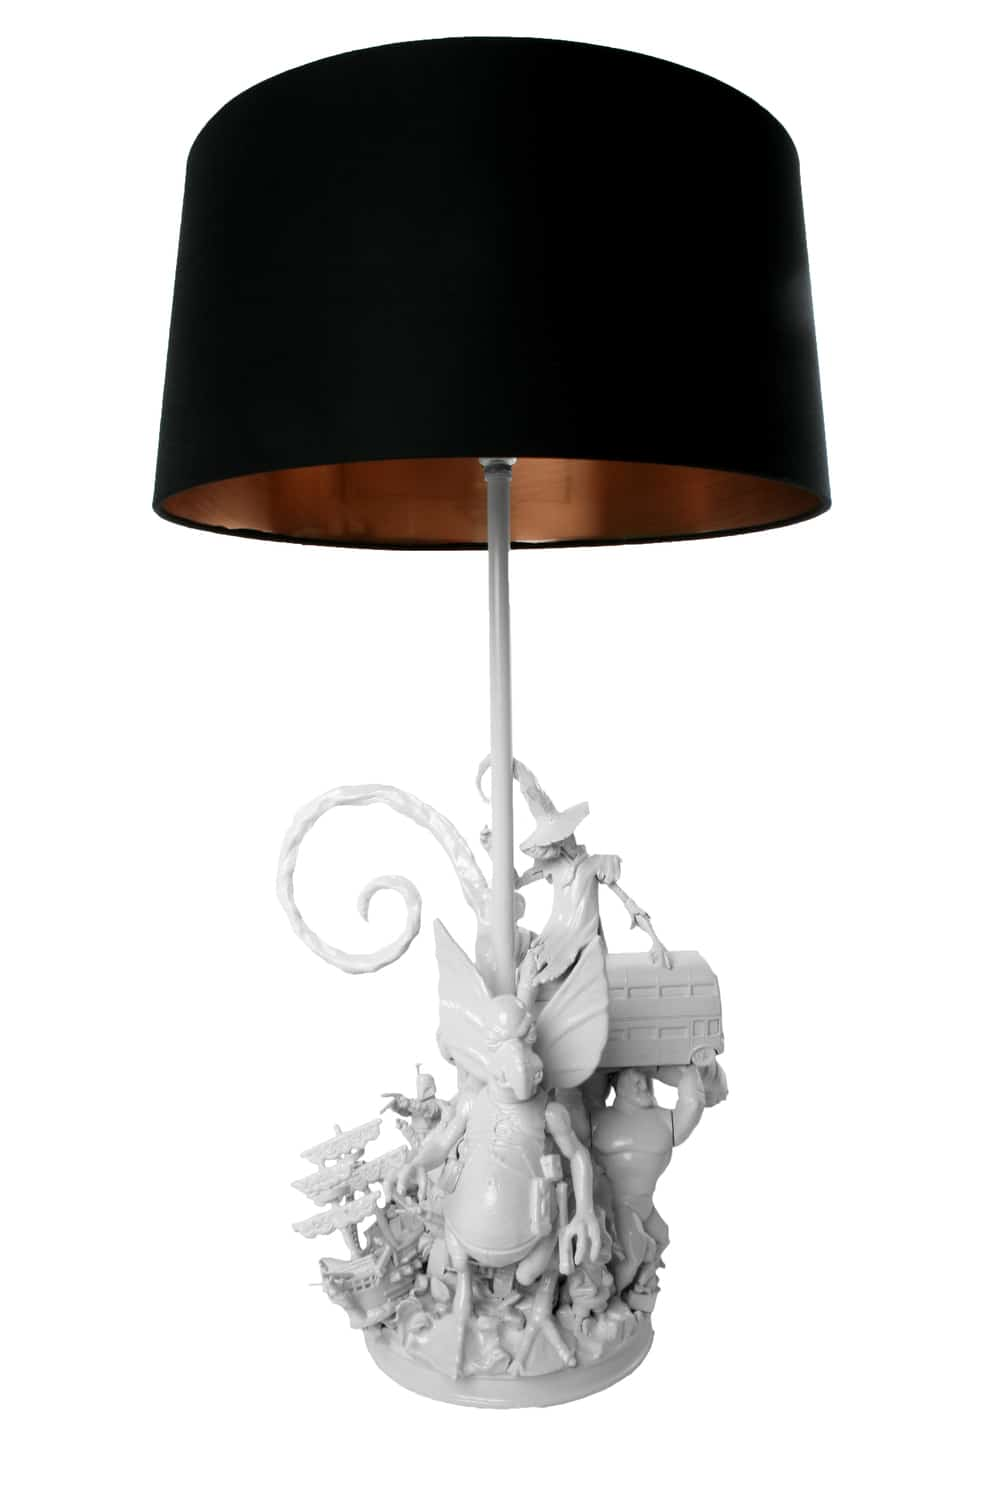 Bespoke Lamps Furniture Made From Childhood Toys The